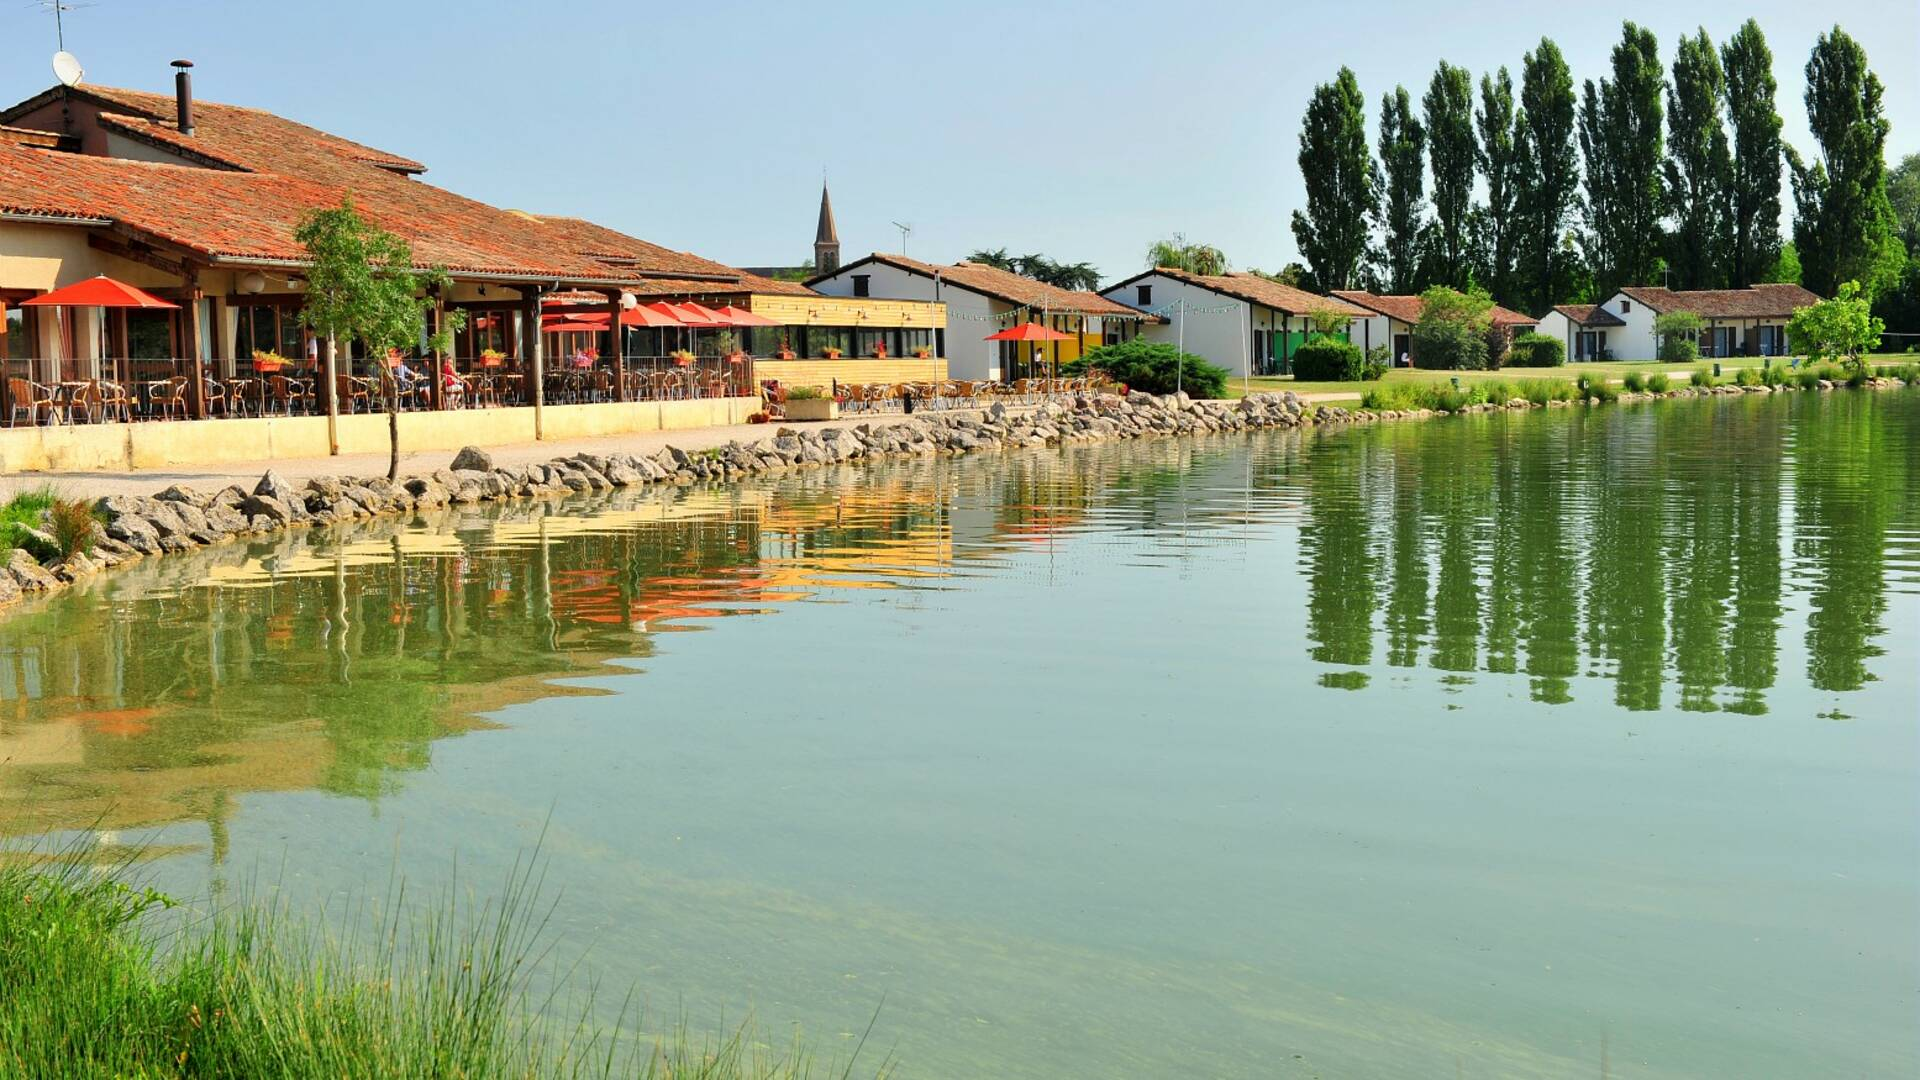 Lake and Hôtel-Club *** Vacanciel Les Rivages, Samatan, Savès, Gers, Gascogne, France